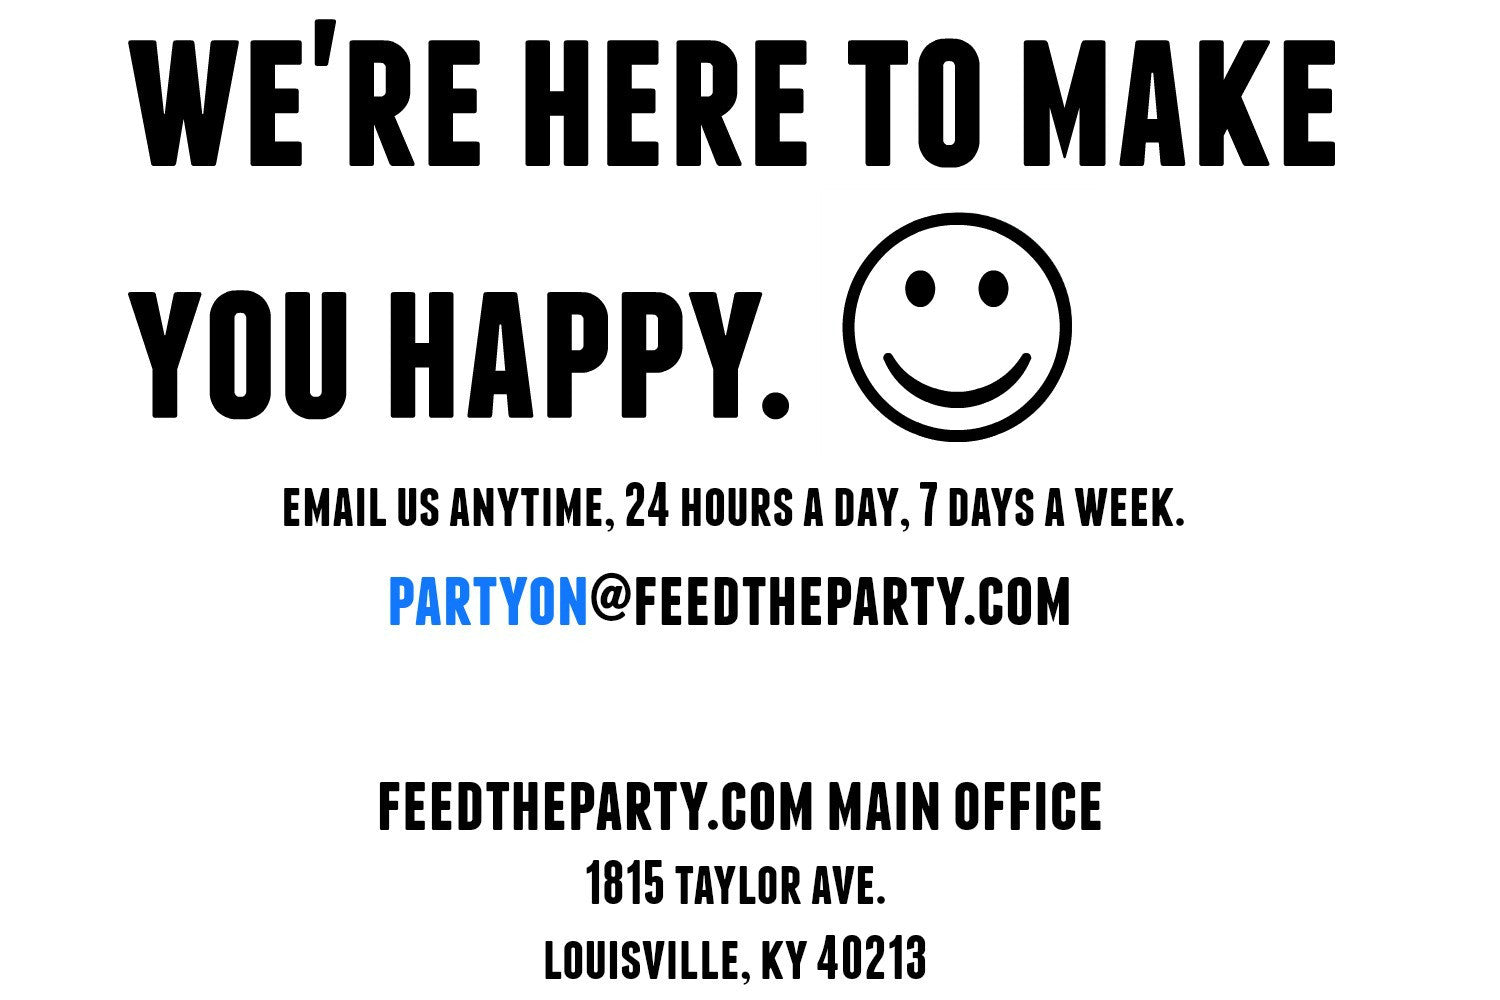 Contact us because we're here to make you happy at Feed the Party